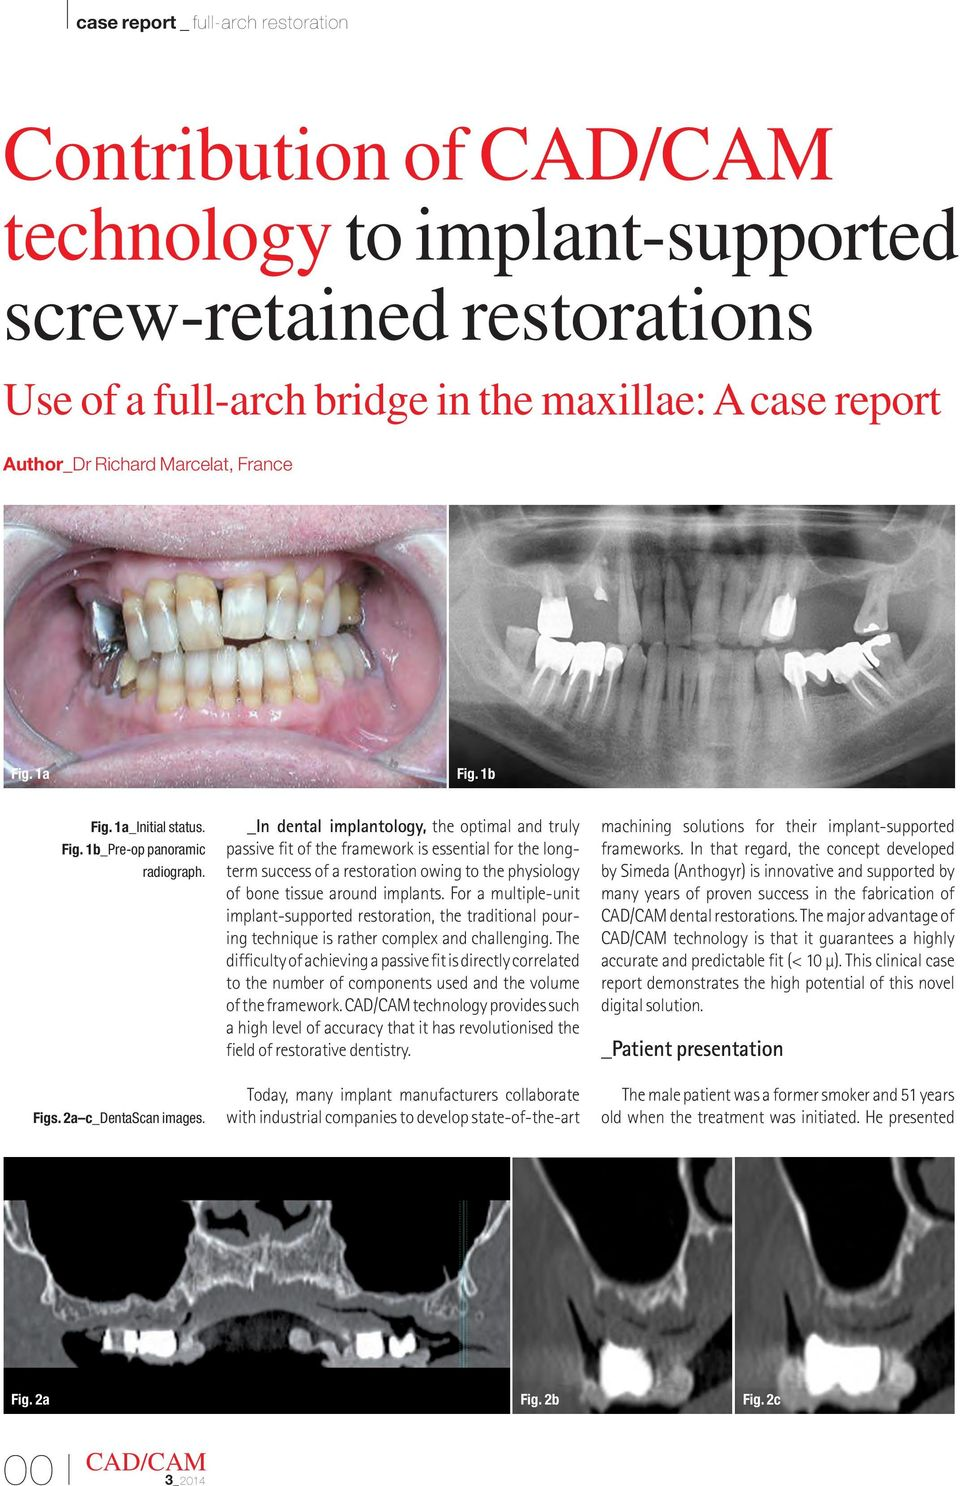 _In dental implantology, the optimal and truly passive fit of the framework is essential for the longterm success of a restoration owing to the physiology of bone tissue around implants.